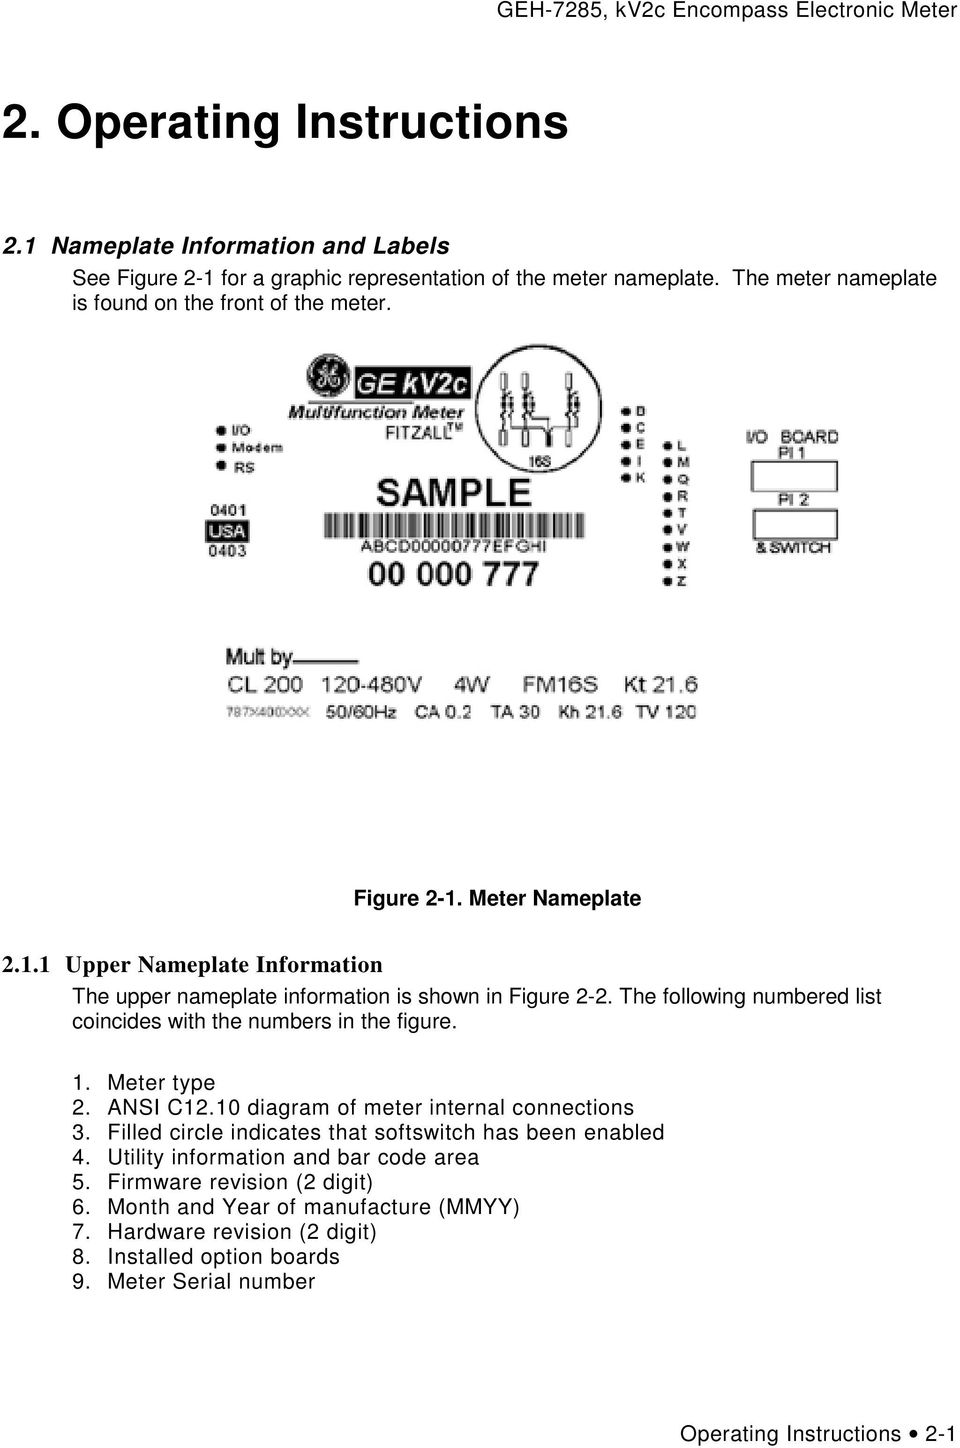 Ge Kv2c Tm Encompass Electronic Meter Pdf 9s Socket Wiring Diagrams The Following Numbered List Coincides With Numbers In Figure 1 Type